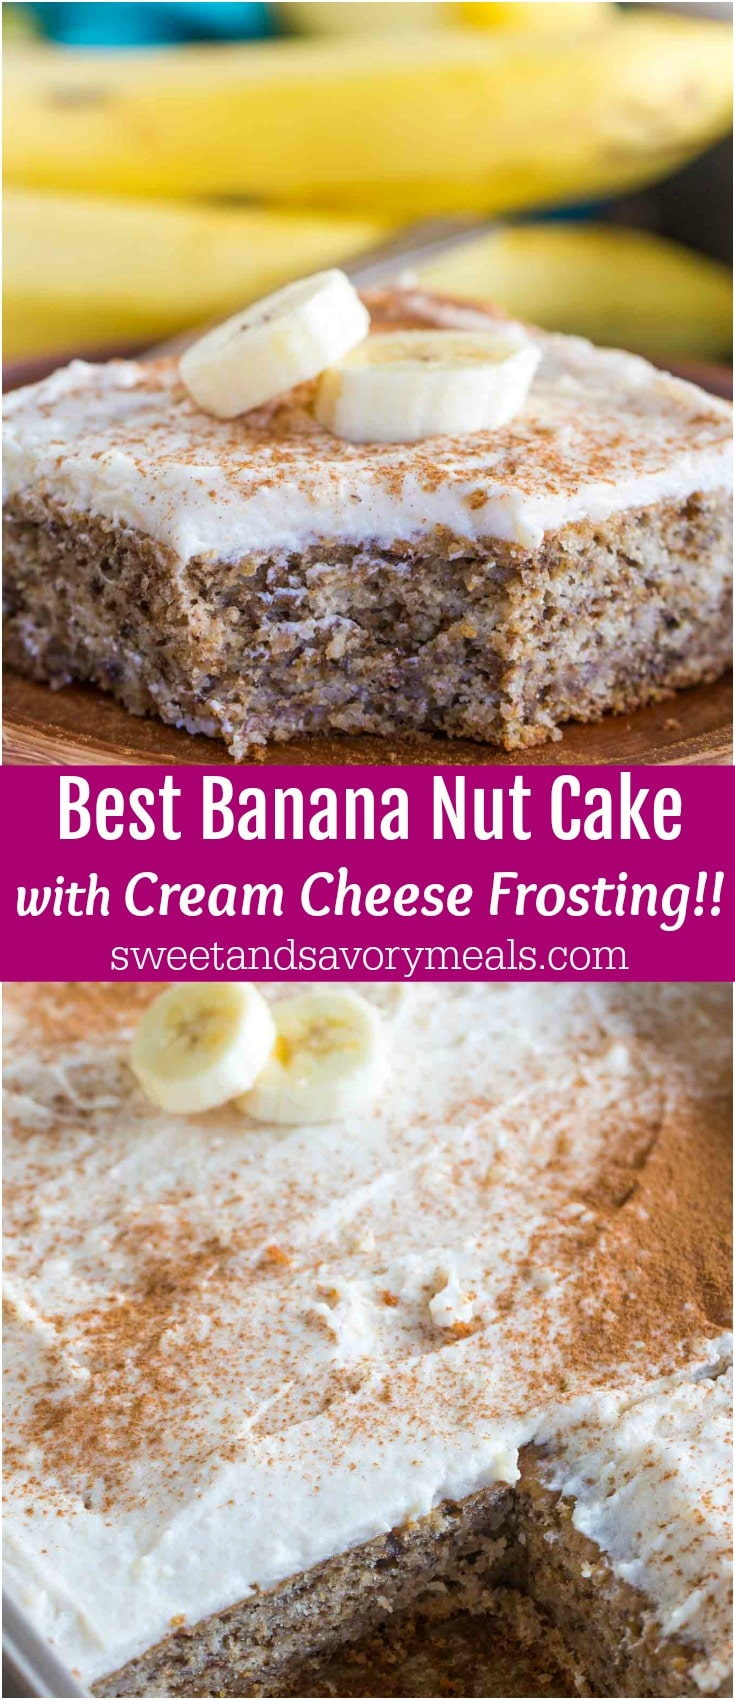 Banana Nut Cake is a breeze to make! Sweet, nutty, slightly chewy, crunchy and topped with the most amazing cinnamon cream cheese frosting.